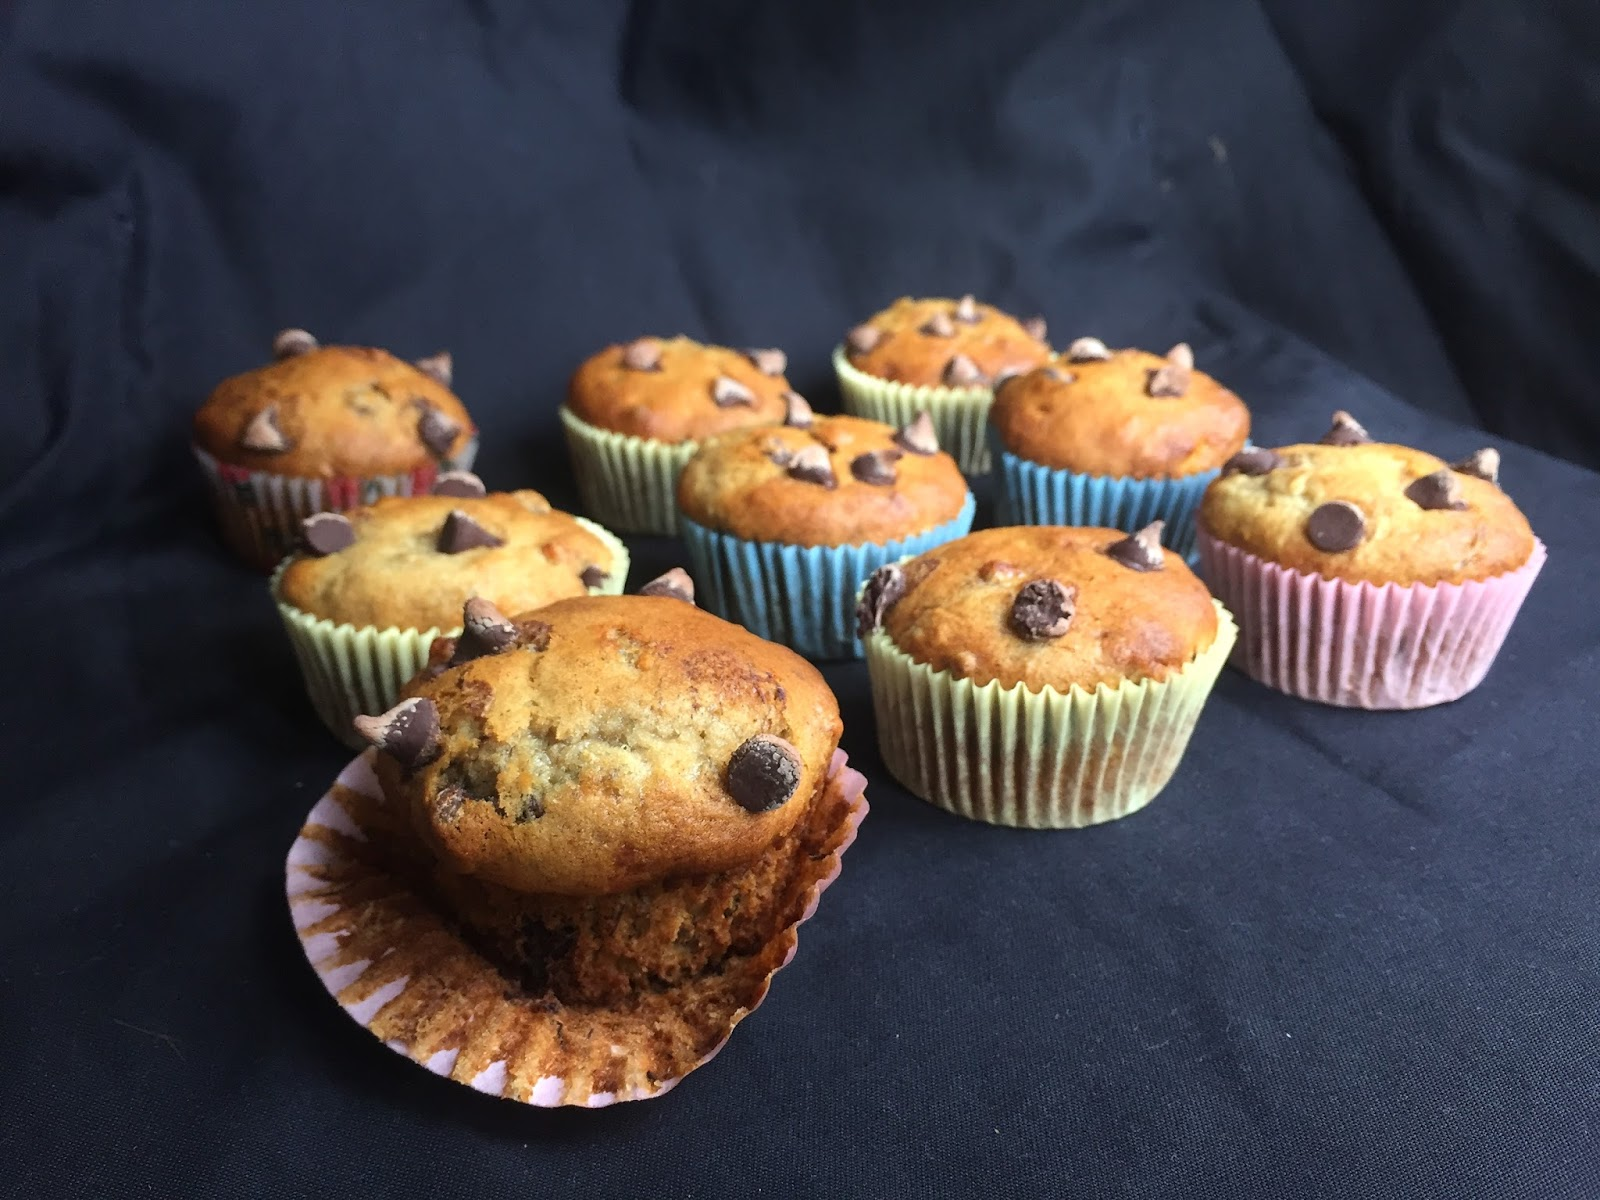 Vegan Chocolate Chip Banana Muffins